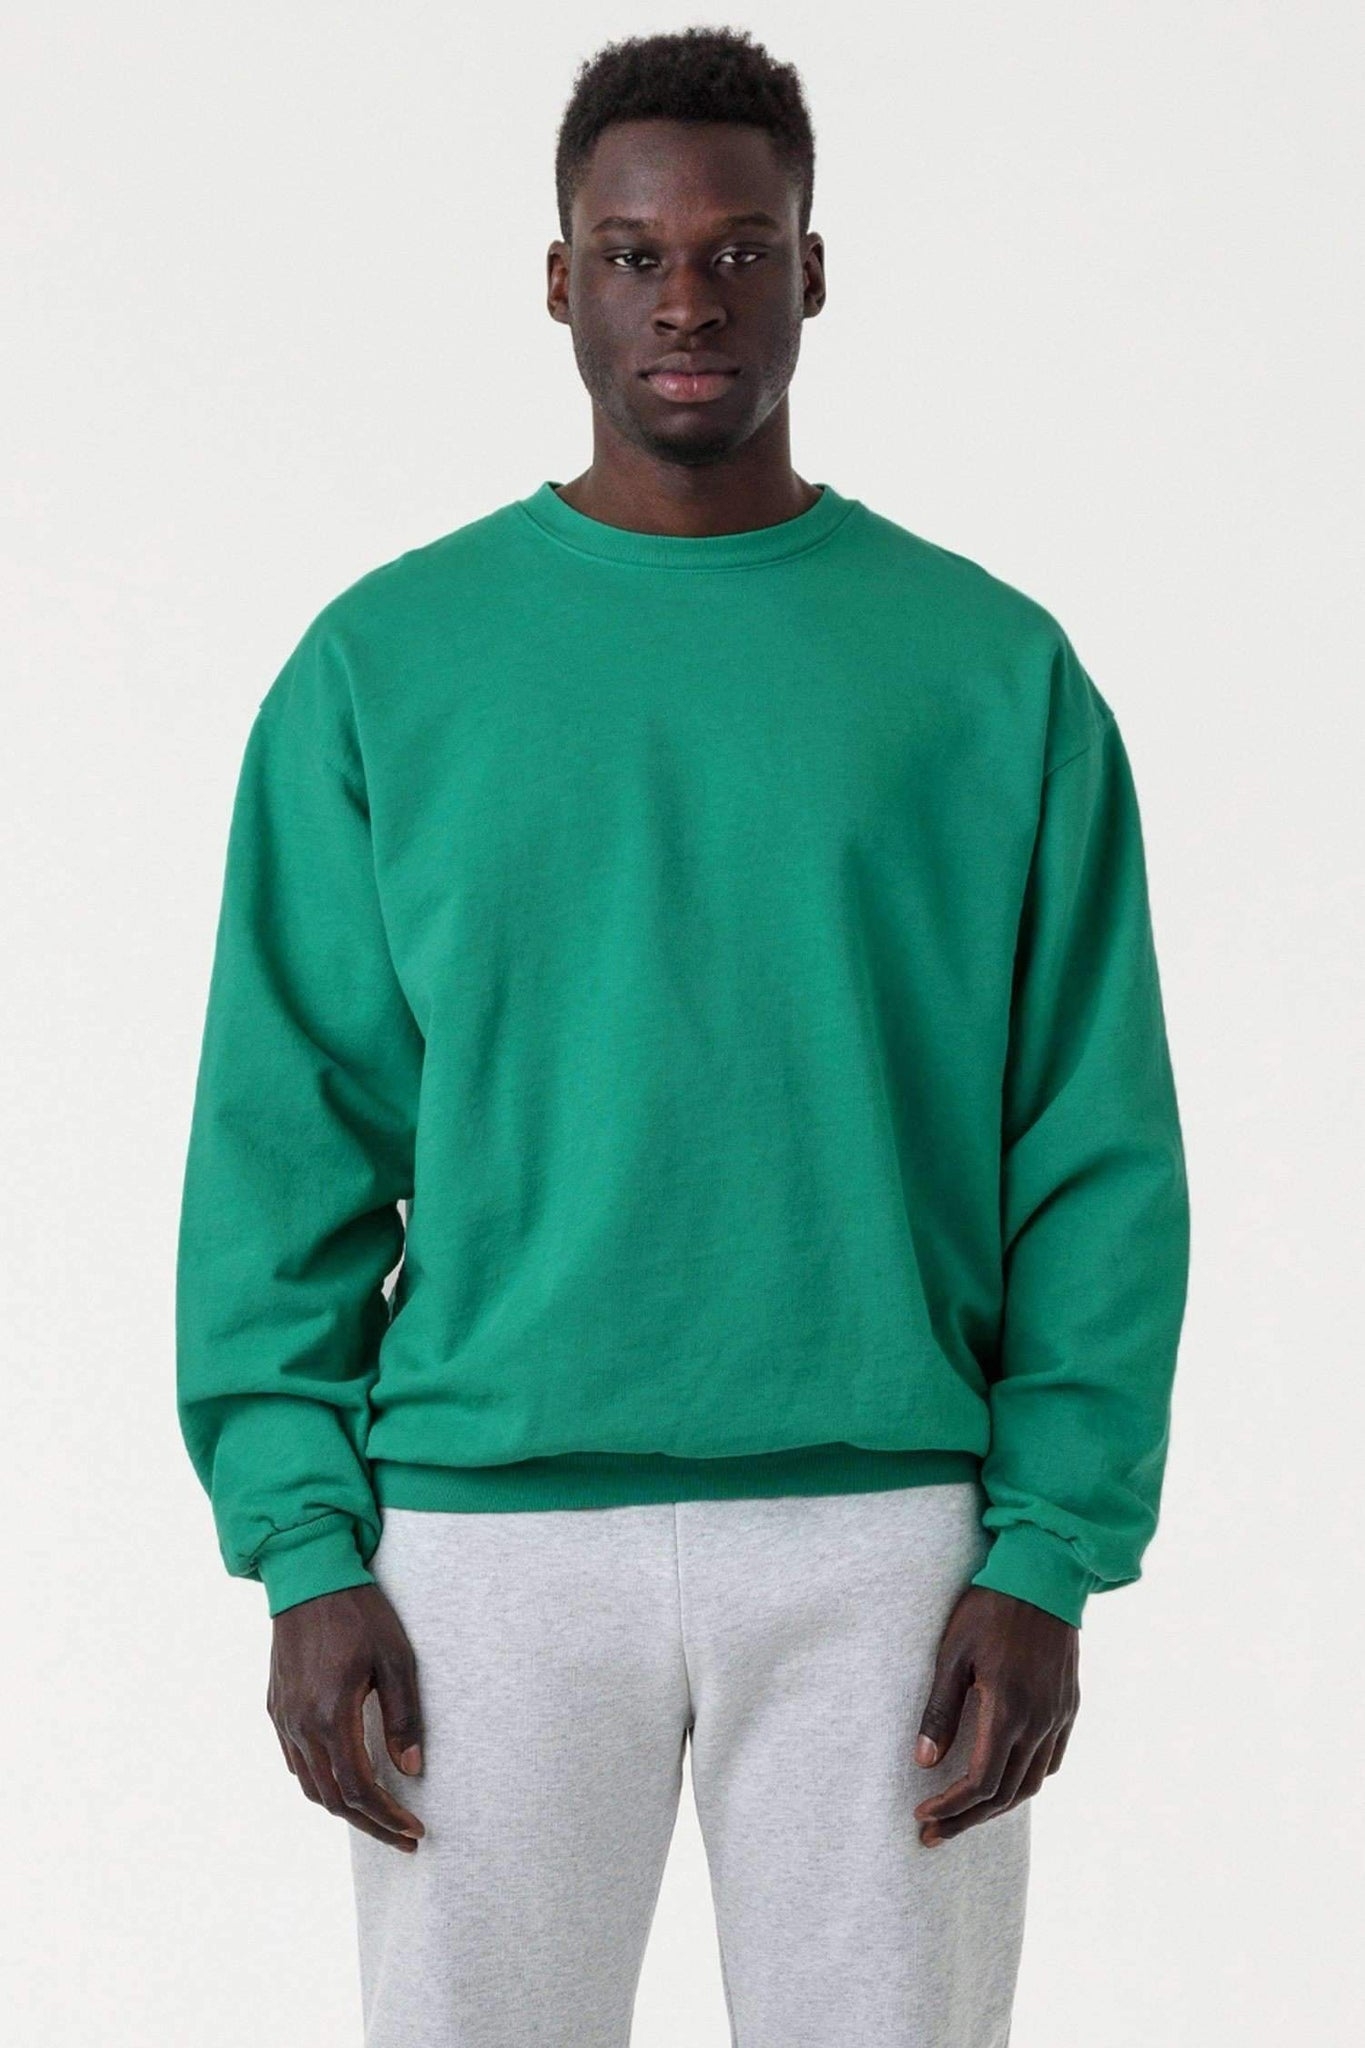 MWT07GD - Long Sleeve Garment Dye French Terry Pullover Sweatshirt Los Angeles Apparel Emerald XS